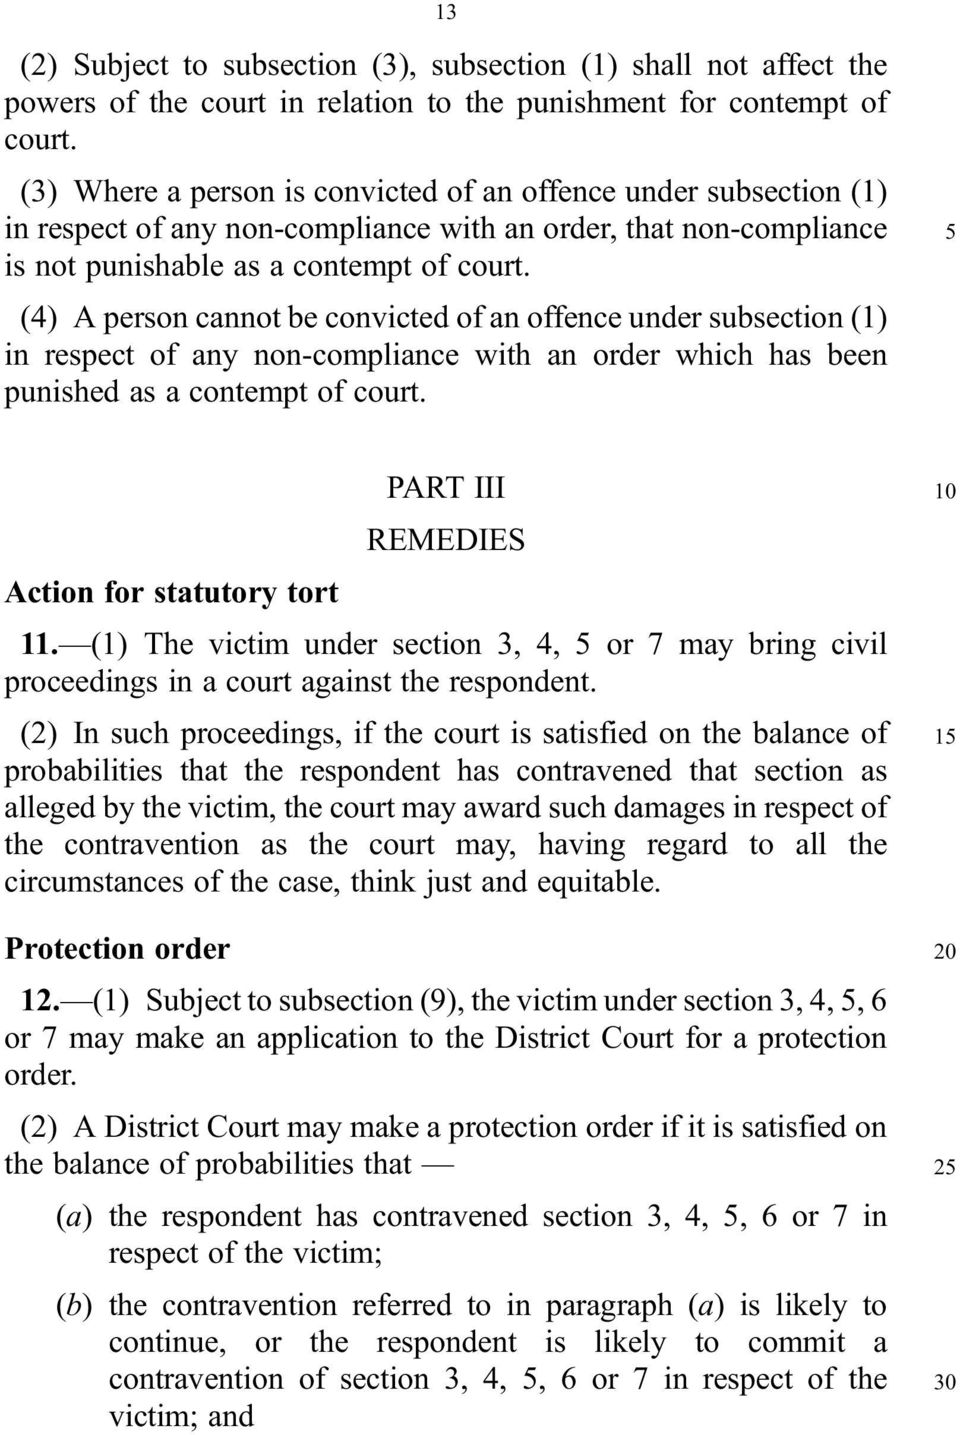 (4) A person cannot be convicted of an offence under subsection (1) in respect of any non compliance with an order which has been punished as a contempt of court.